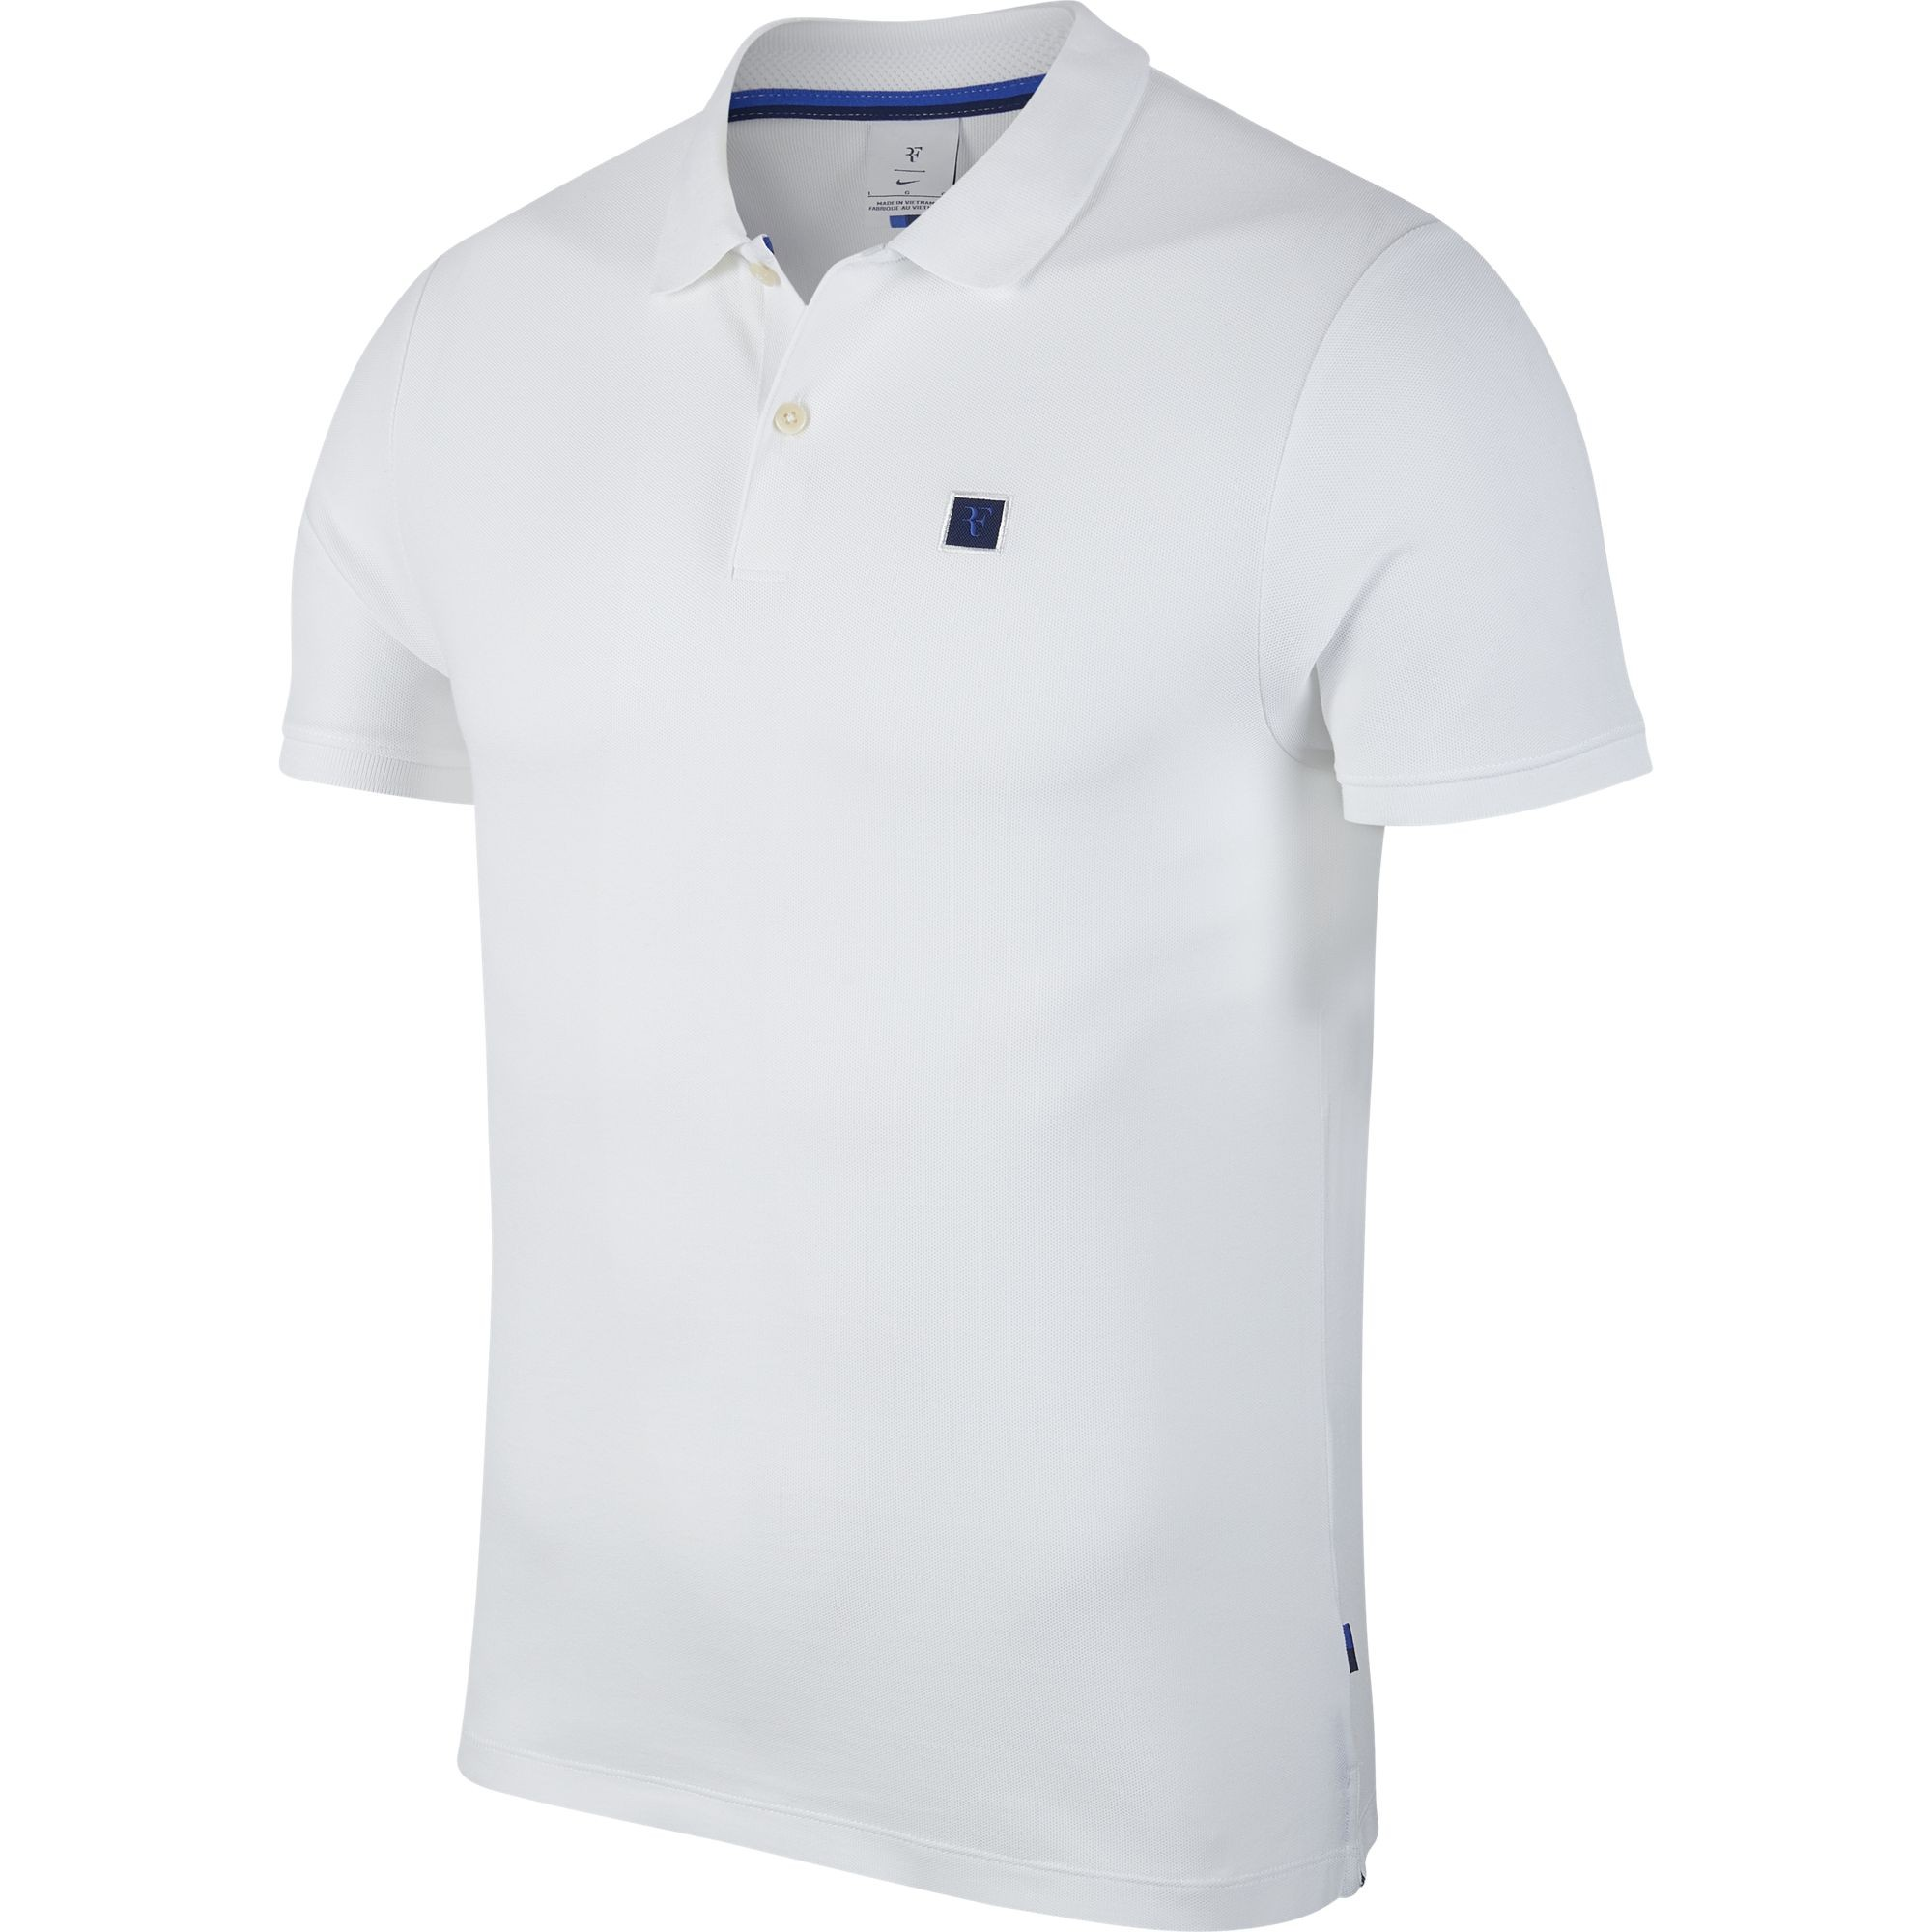 4149a5124bf40 Nike Court Polo Roger Federer Homme Automne 2018 - Polo De Tennis Homme  Polo De Tennis Homme